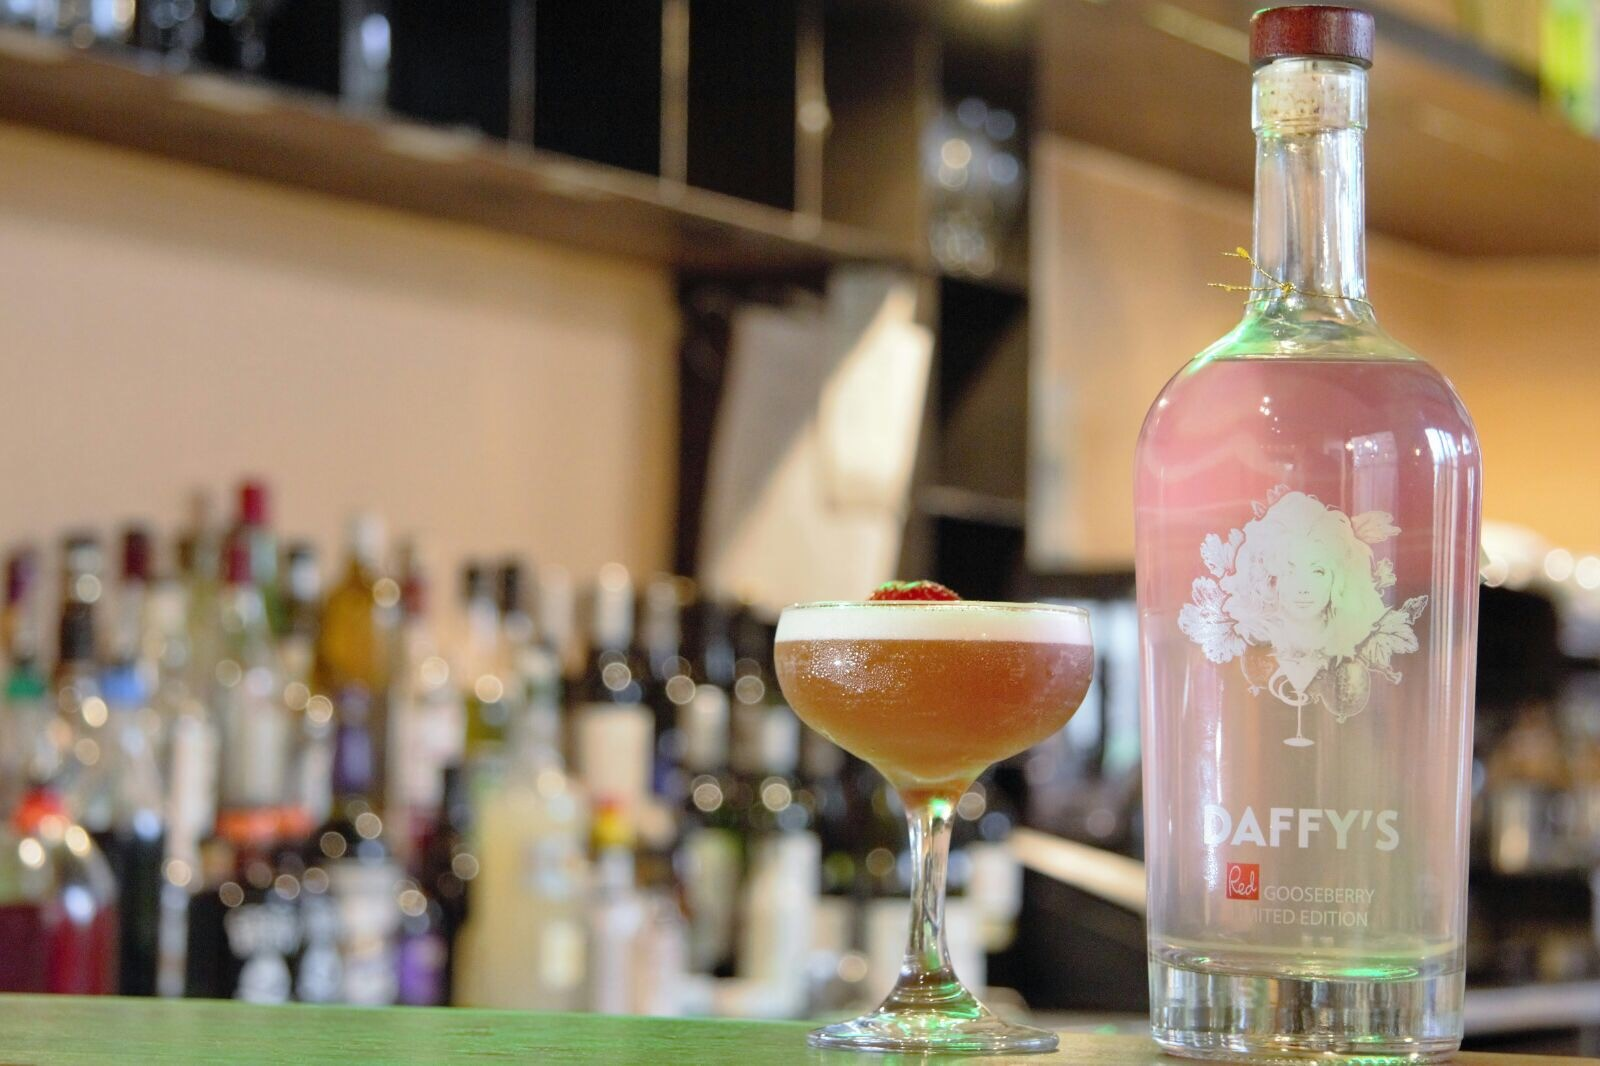 Daffy's Limited Edition Red Gooseberry Gin